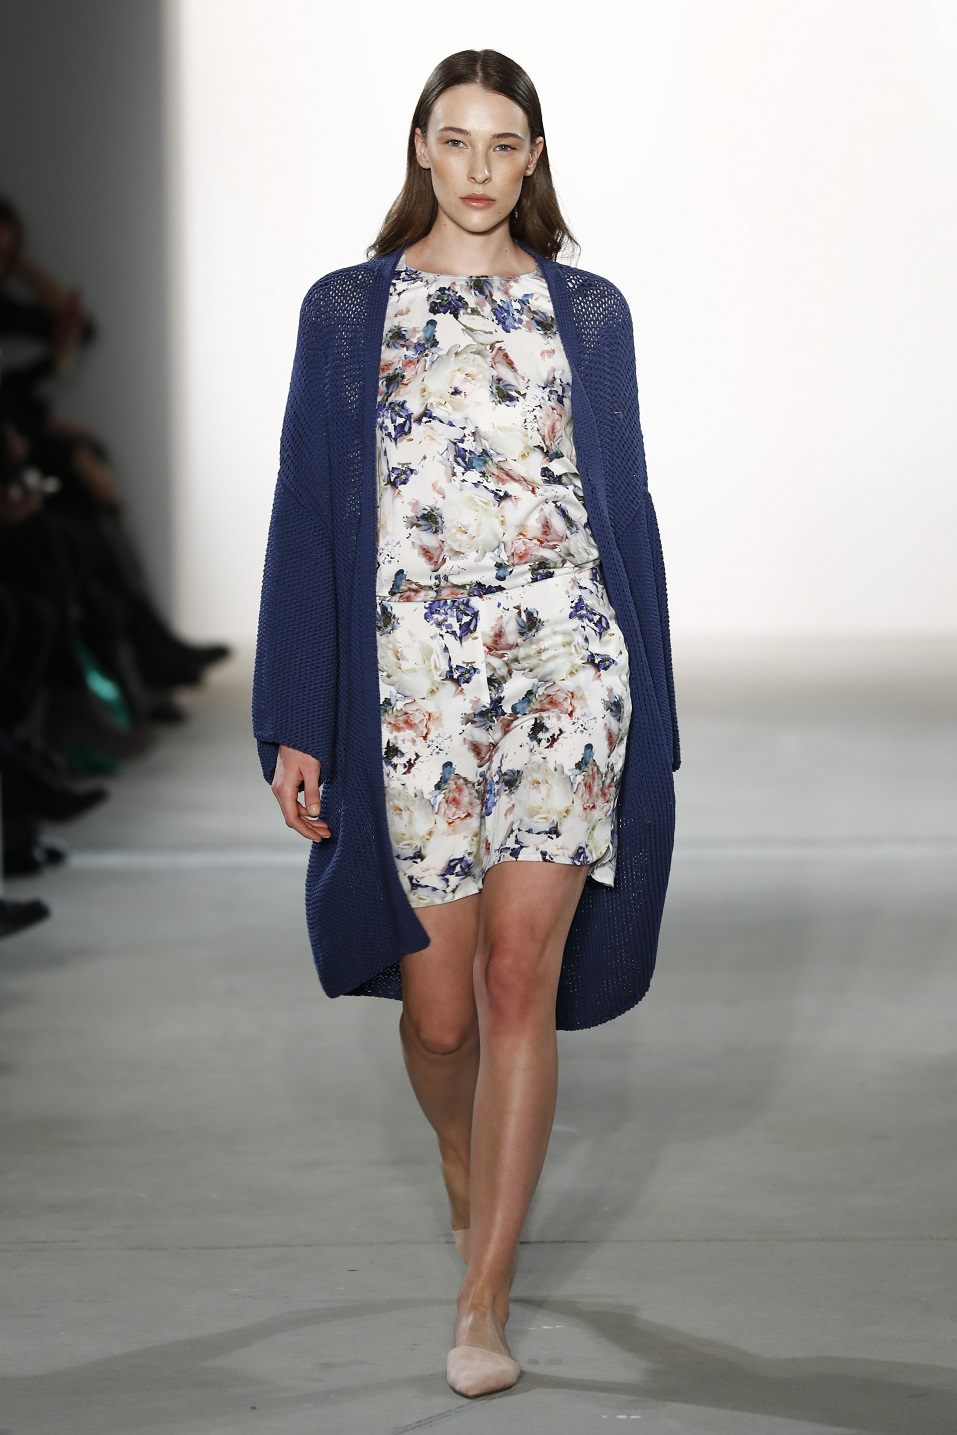 A model walks the runway at the holyGhost show during the Mercedes-Benz Fashion Week